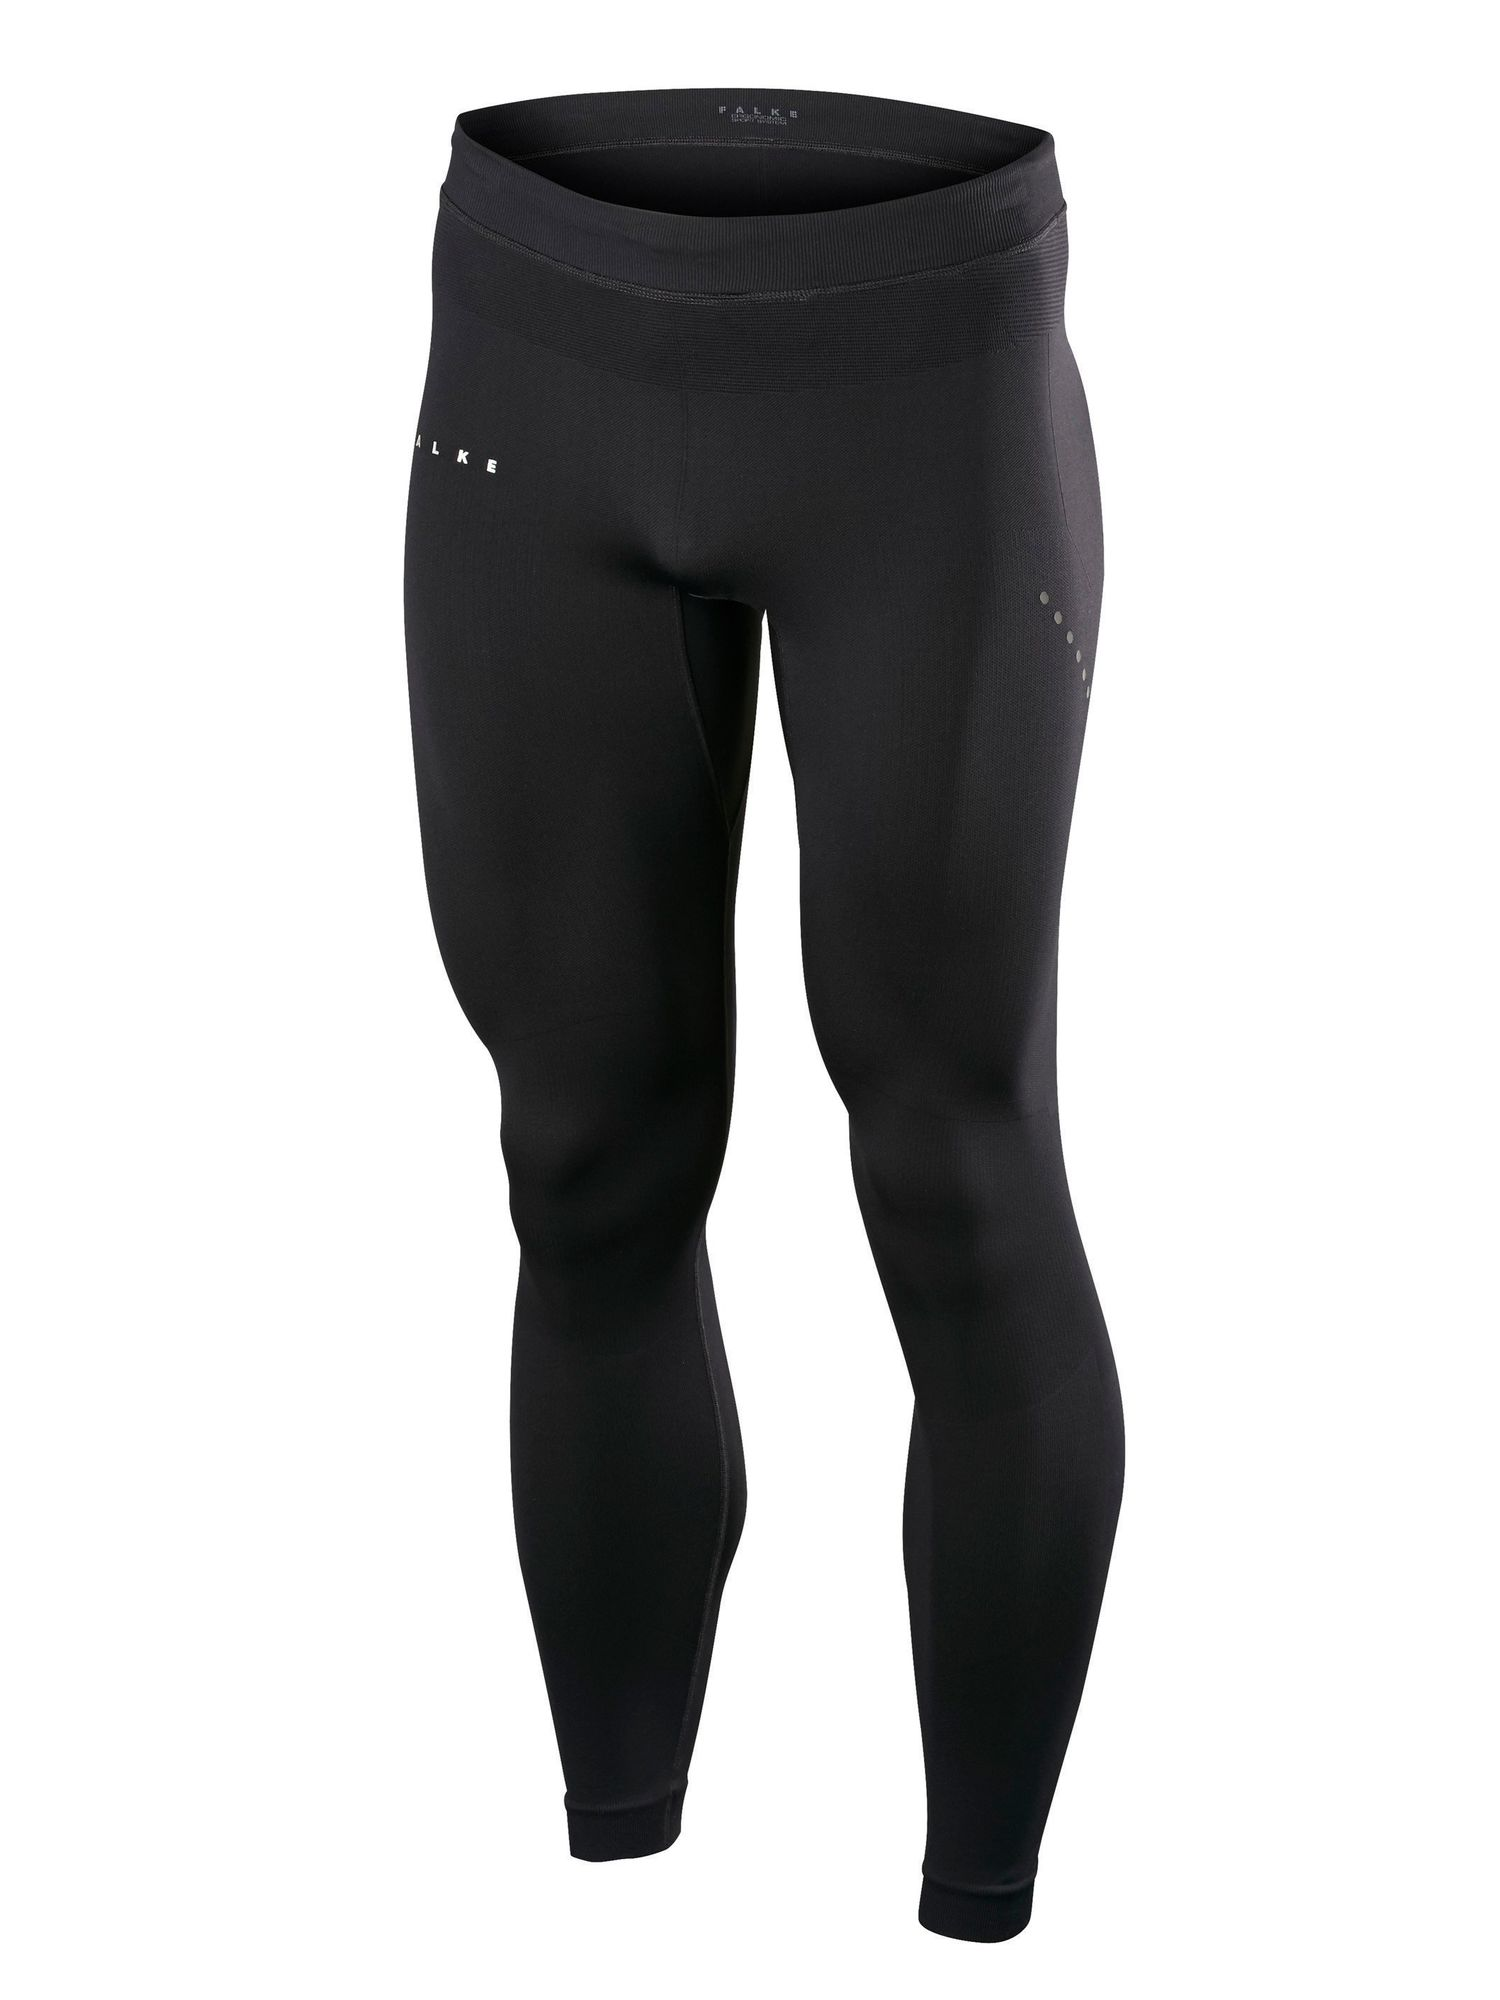 Falke Compression Tights in Schwarz